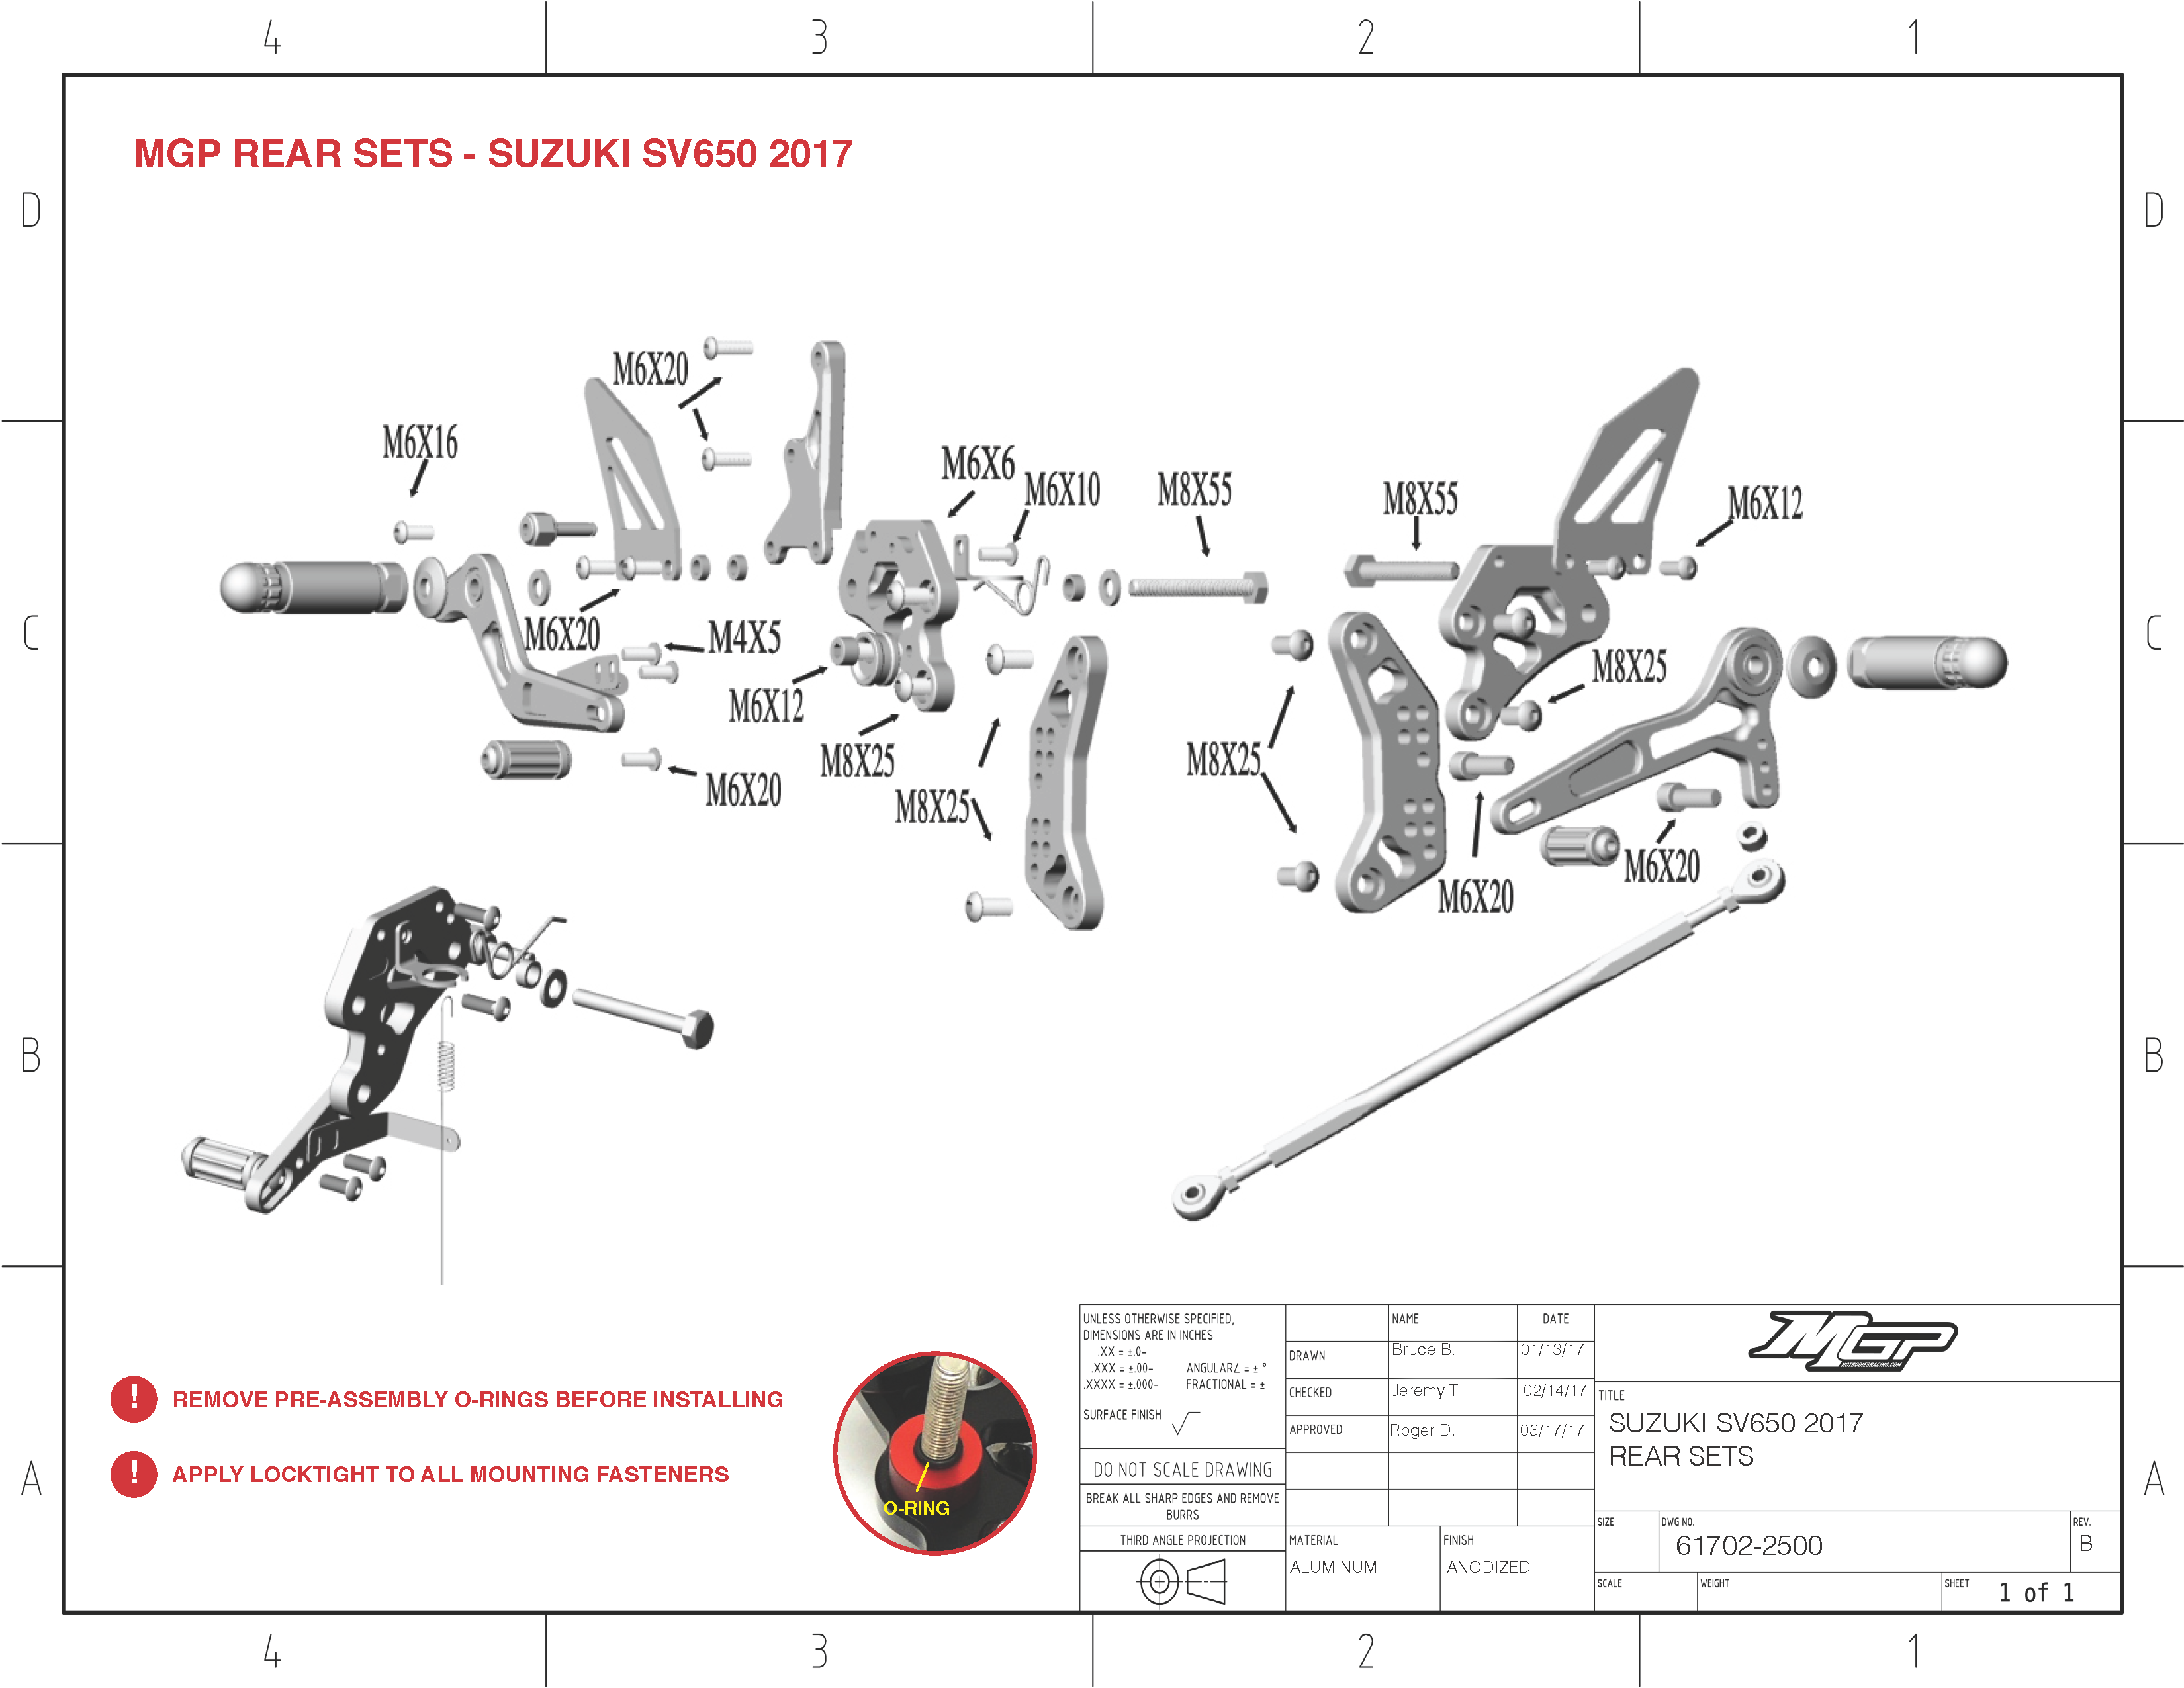 Sv 650 Wiring Diagram Page 3 And Schematics Katana Engine 04 Suzuki Sv650s Schematic Well Detailed Diagrams U2022 Rh Flyvpn Co 2002